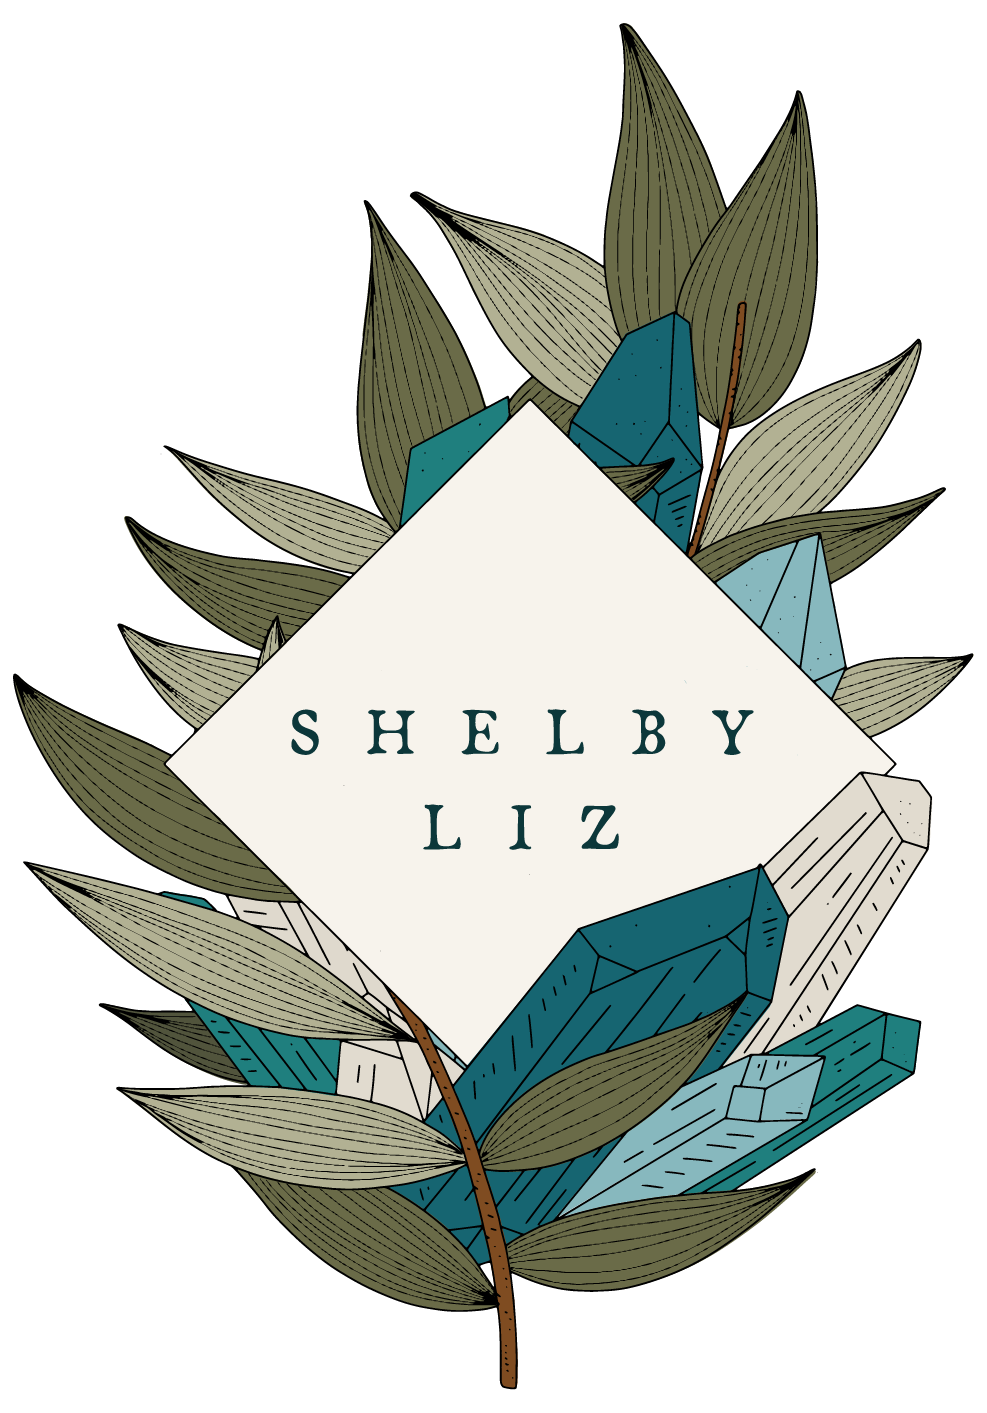 Posing Prompts and Creating Motion in Imagery - Shelby Liz